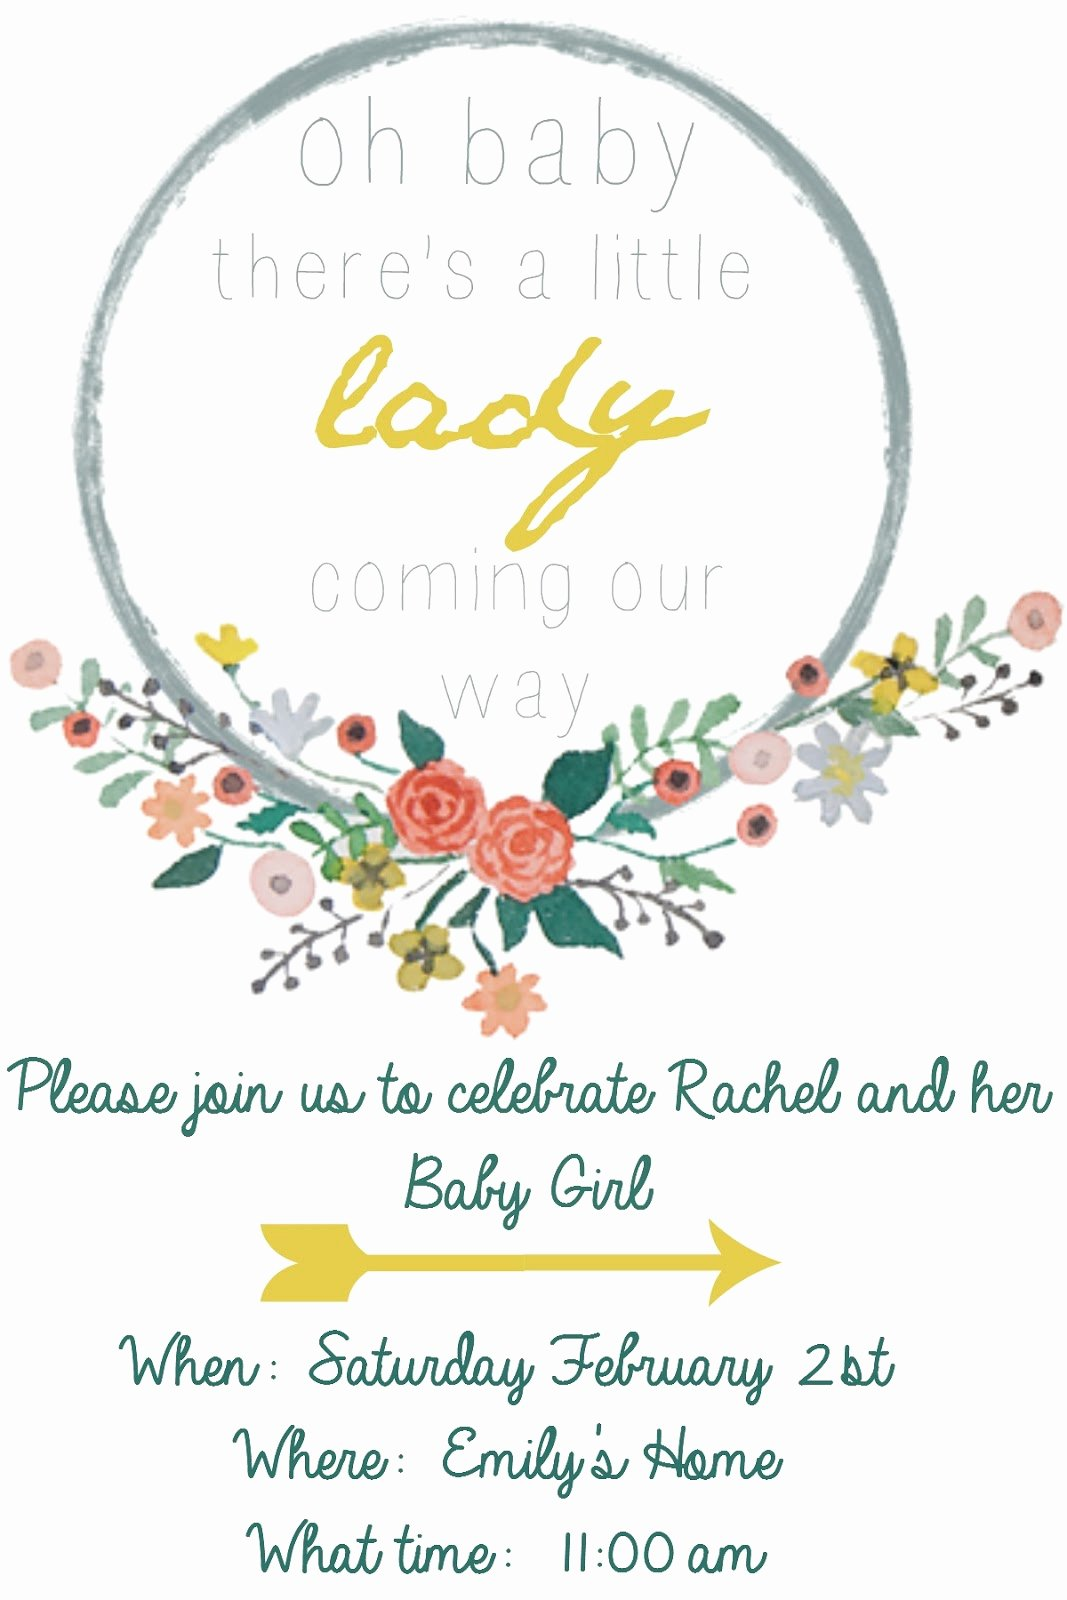 Baby Shower Template Free Lovely Emmy In Her Element Free Baby Shower Invitation Template